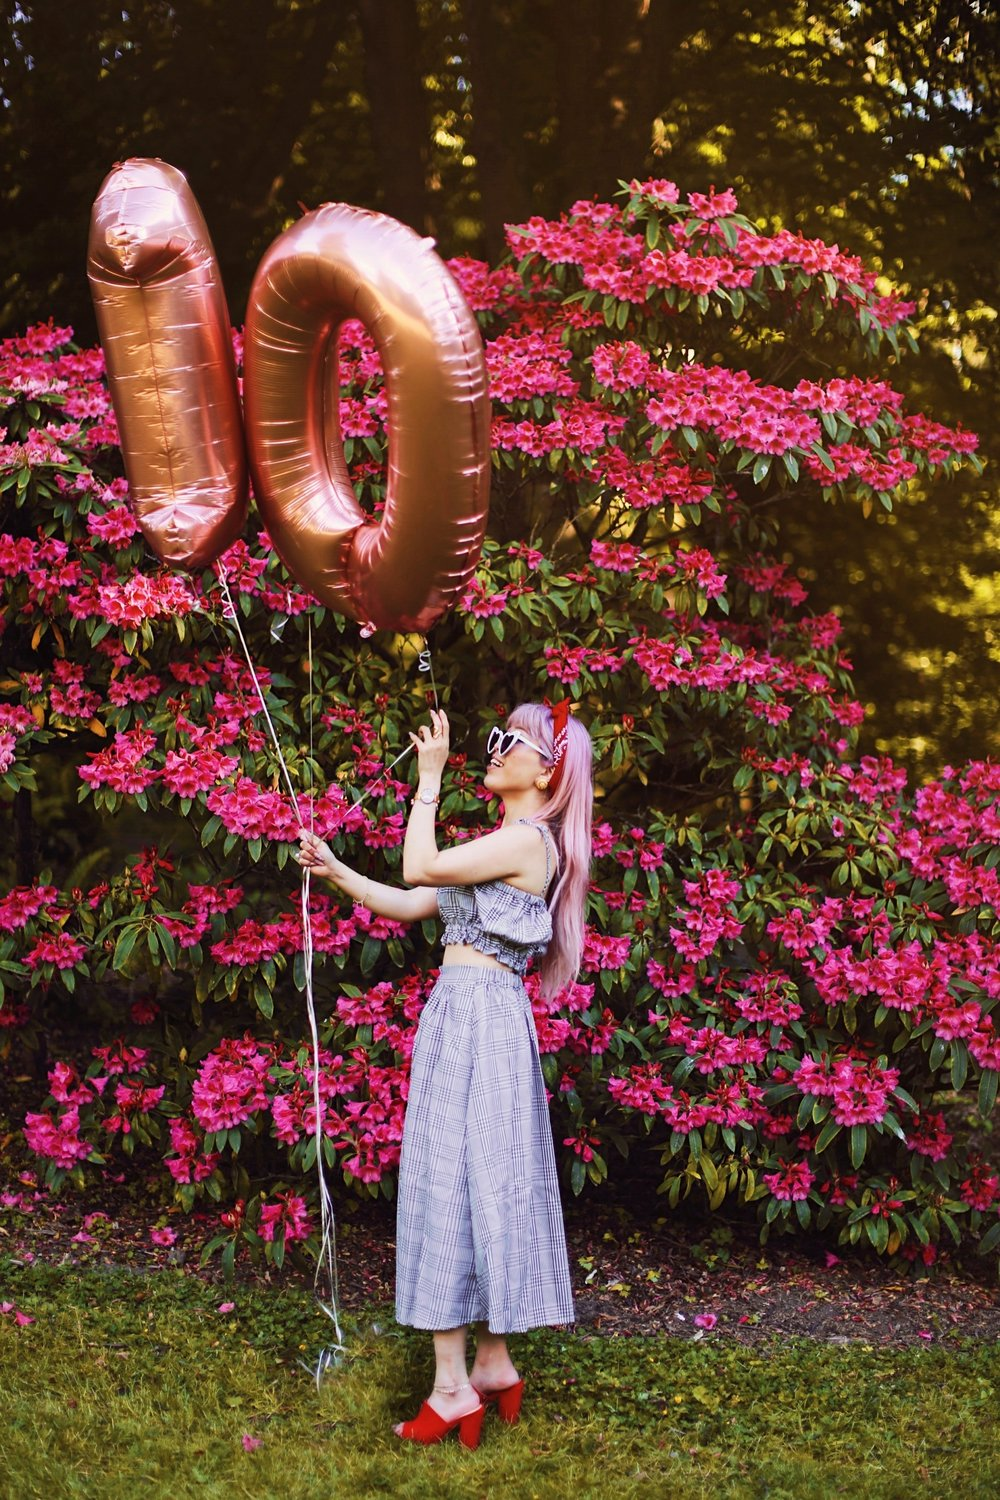 Aika's Love Closet-Seattle Style Life Style Blogger-Japanese-10 Year Anniversary-living in America-what I've learned from Living Abroad-life lessons-pink hair-zero uv heart sunglasses-rose gold balloons-smile 16